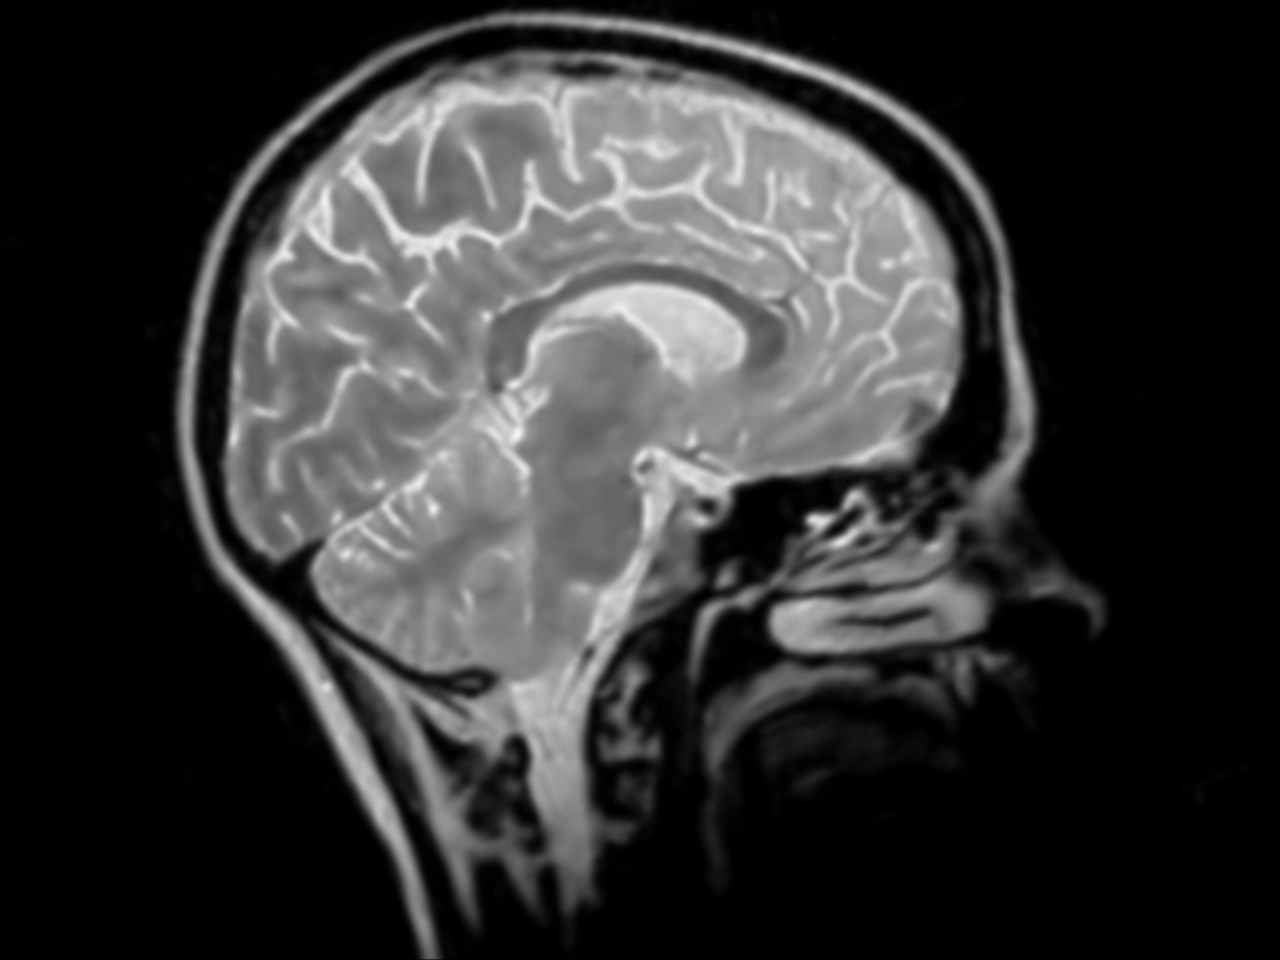 Just one concussion may up Parkinson's risk